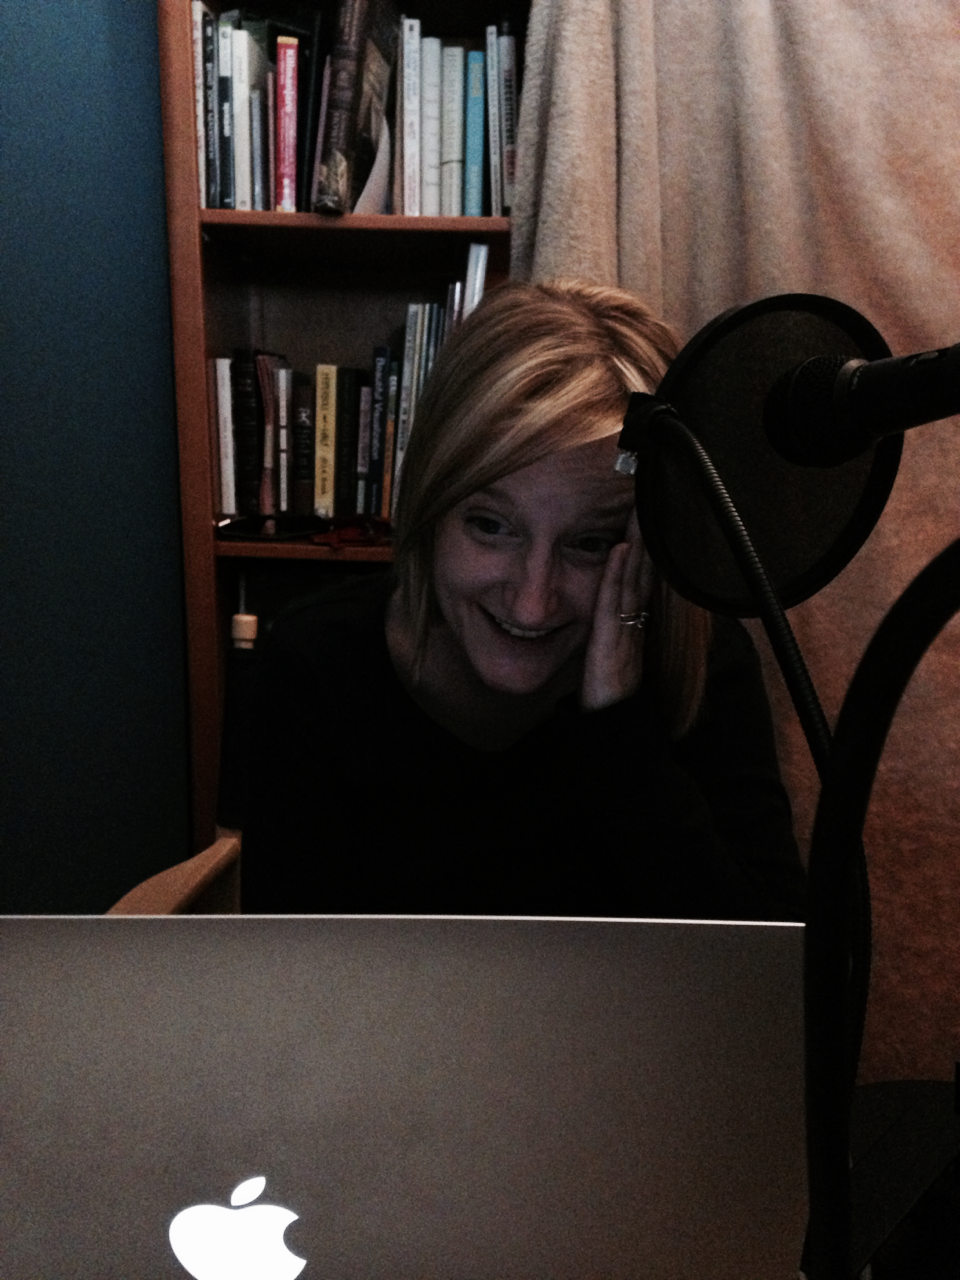 This is Kaarin's spinny-ball-of-death reaction face. Verdict: episode 54 audio is secure.